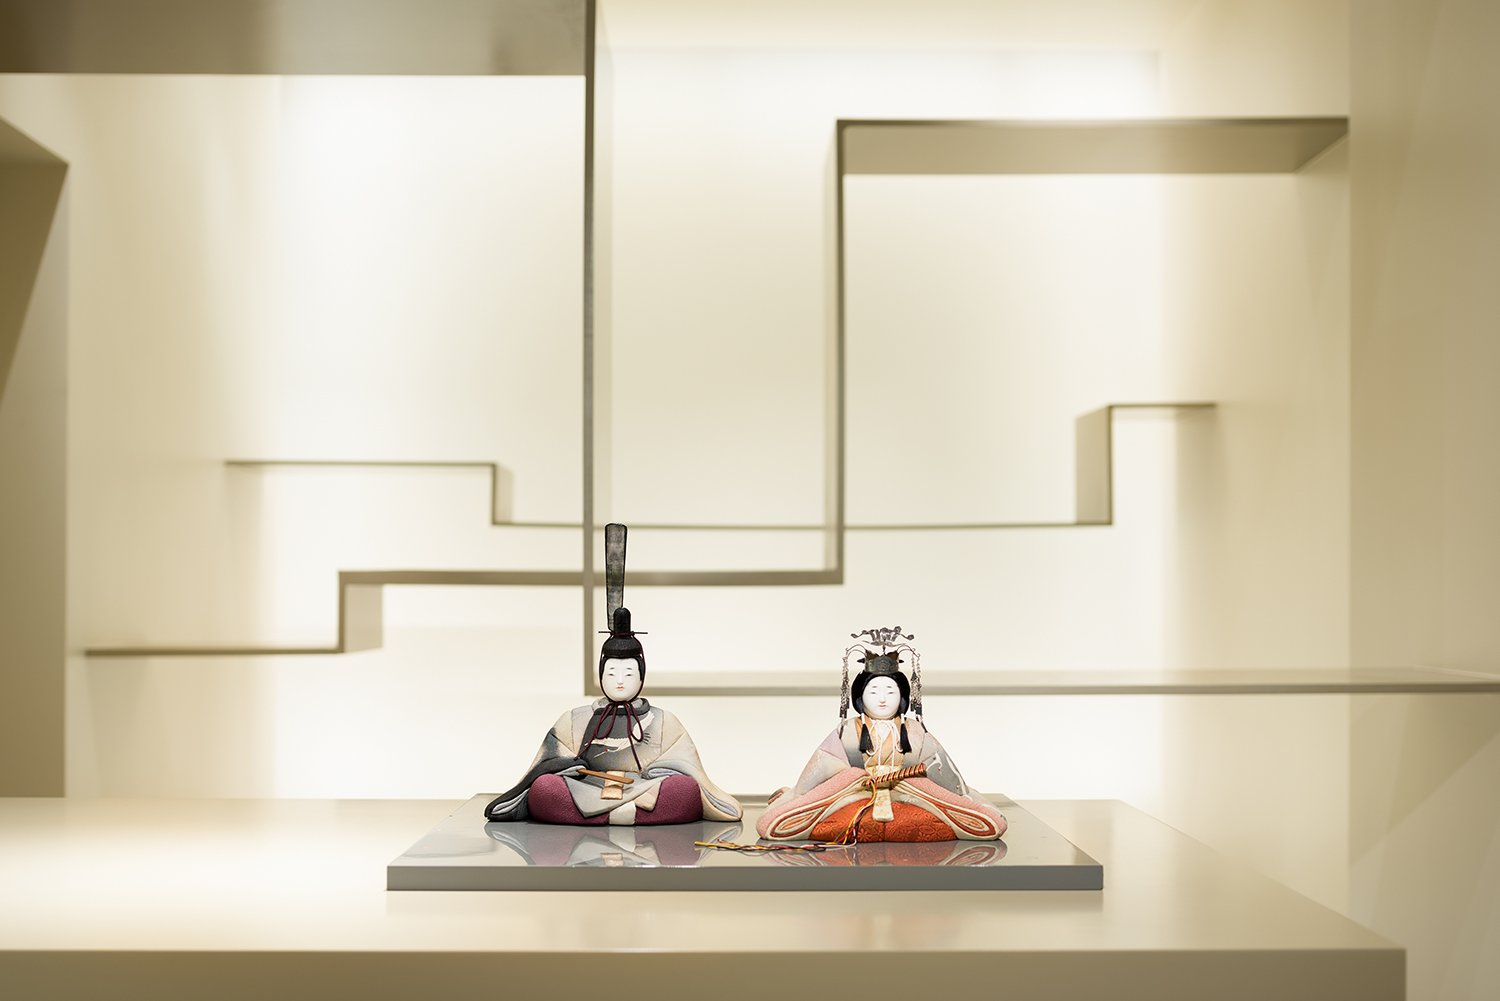 Beishu hina dolls on the center exhibition counter, steel floating shelves in the background. Takumi Ota photography